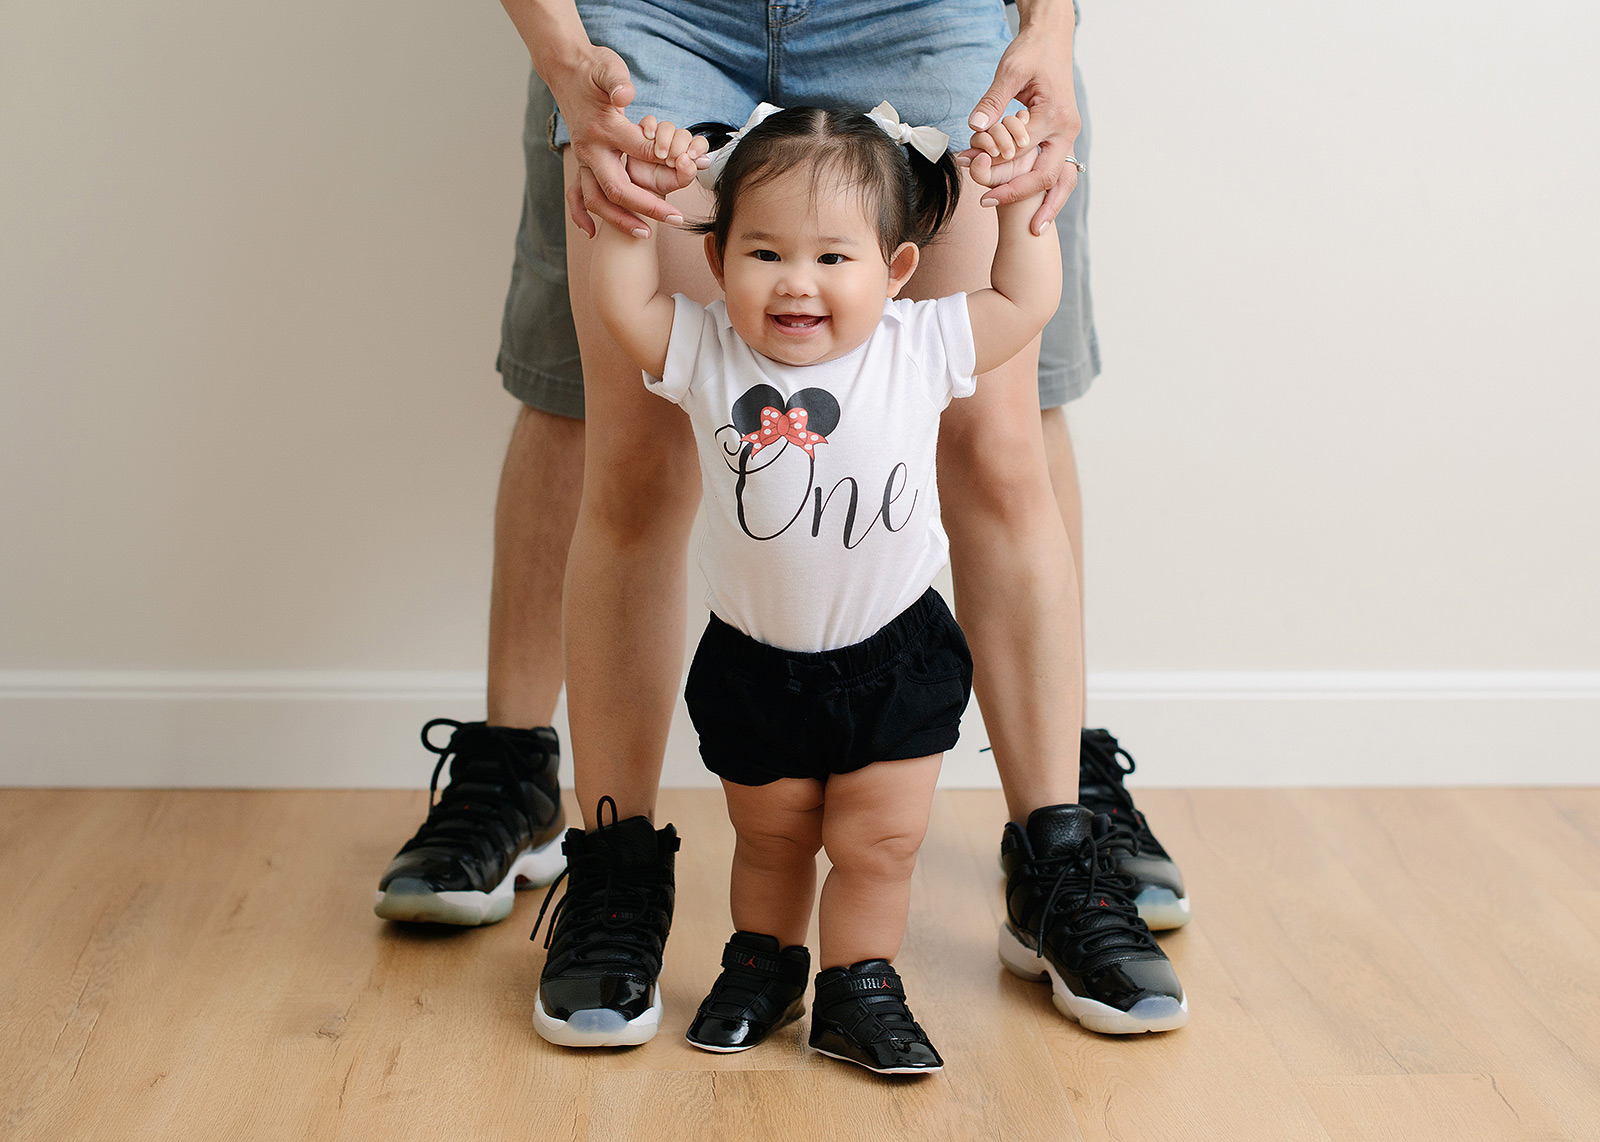 Baby girl standing up with close up of family wearing Air Jordans